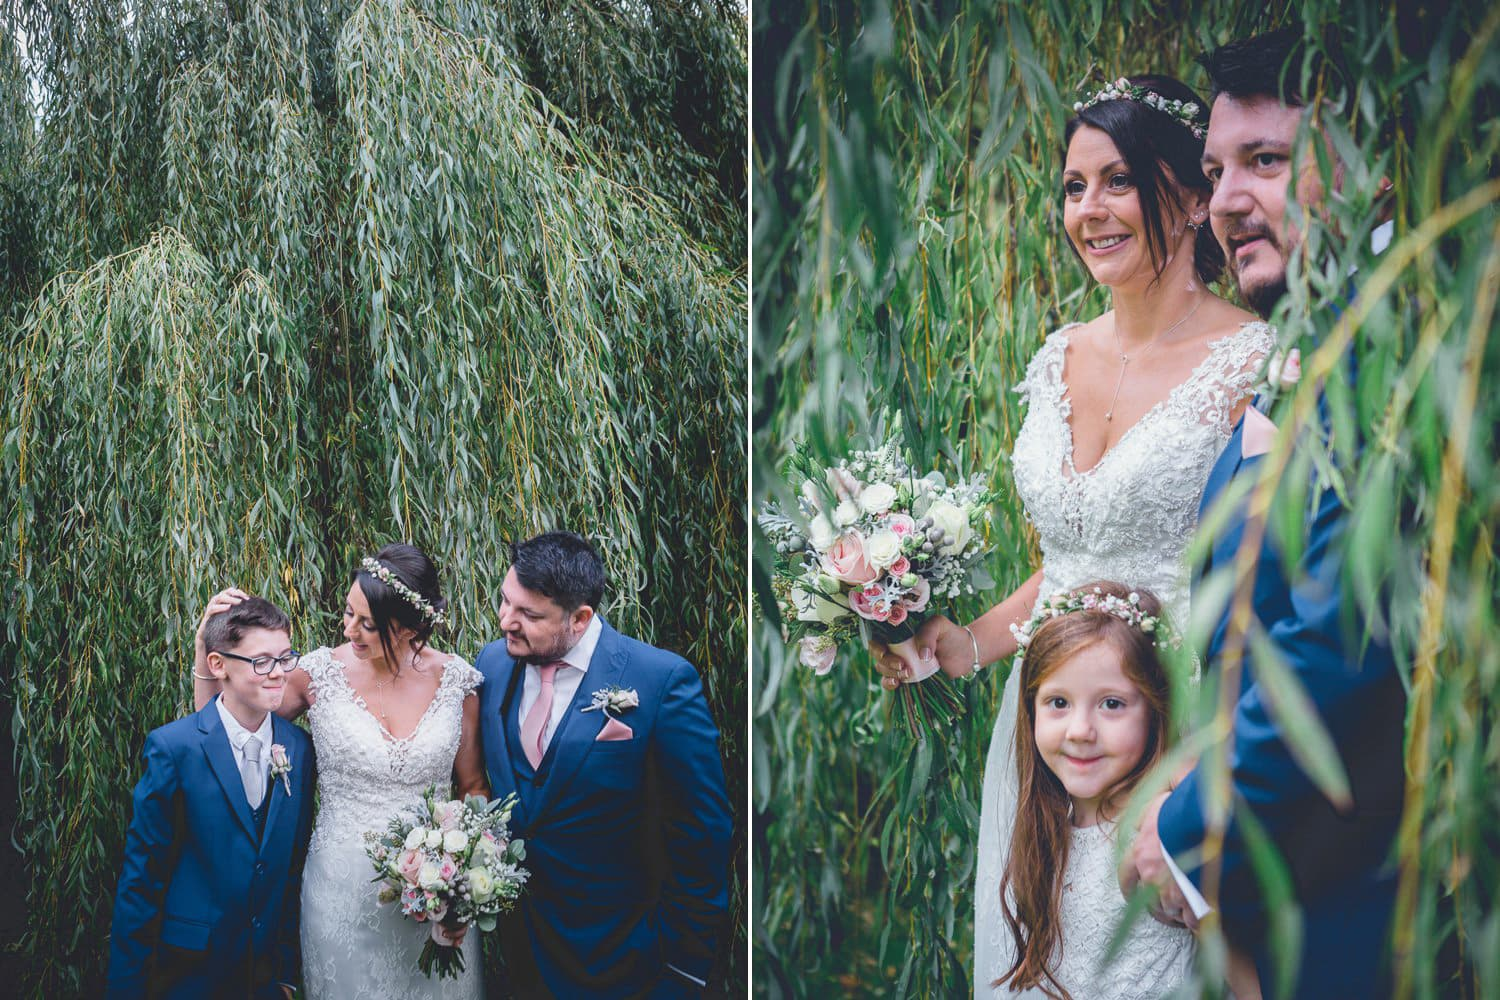 The Old Deanery Wedding, willow tree bride